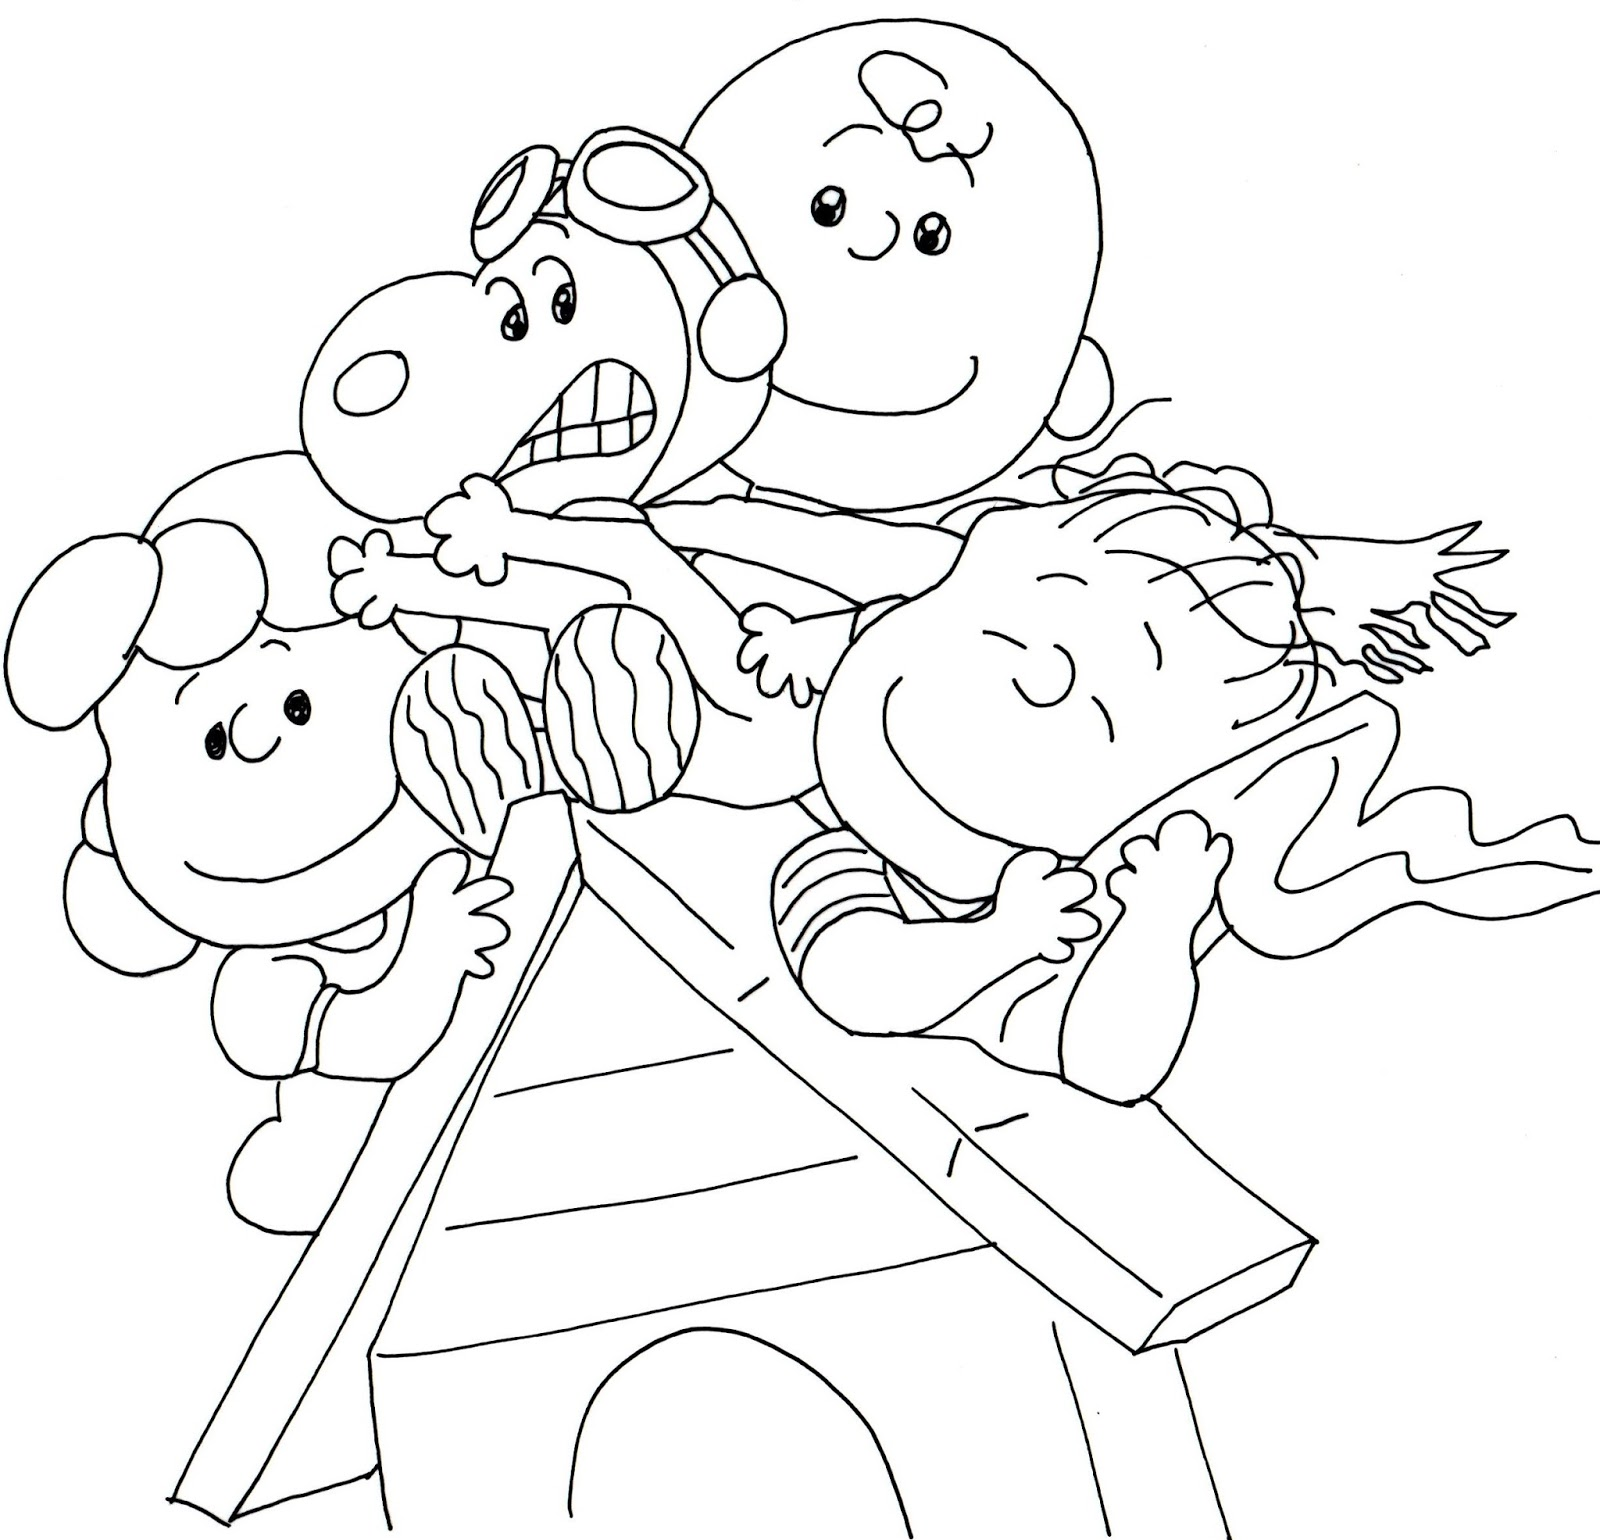 1600x1540 Free Charlie Brown Snoopy And Peanuts Coloring Pages January